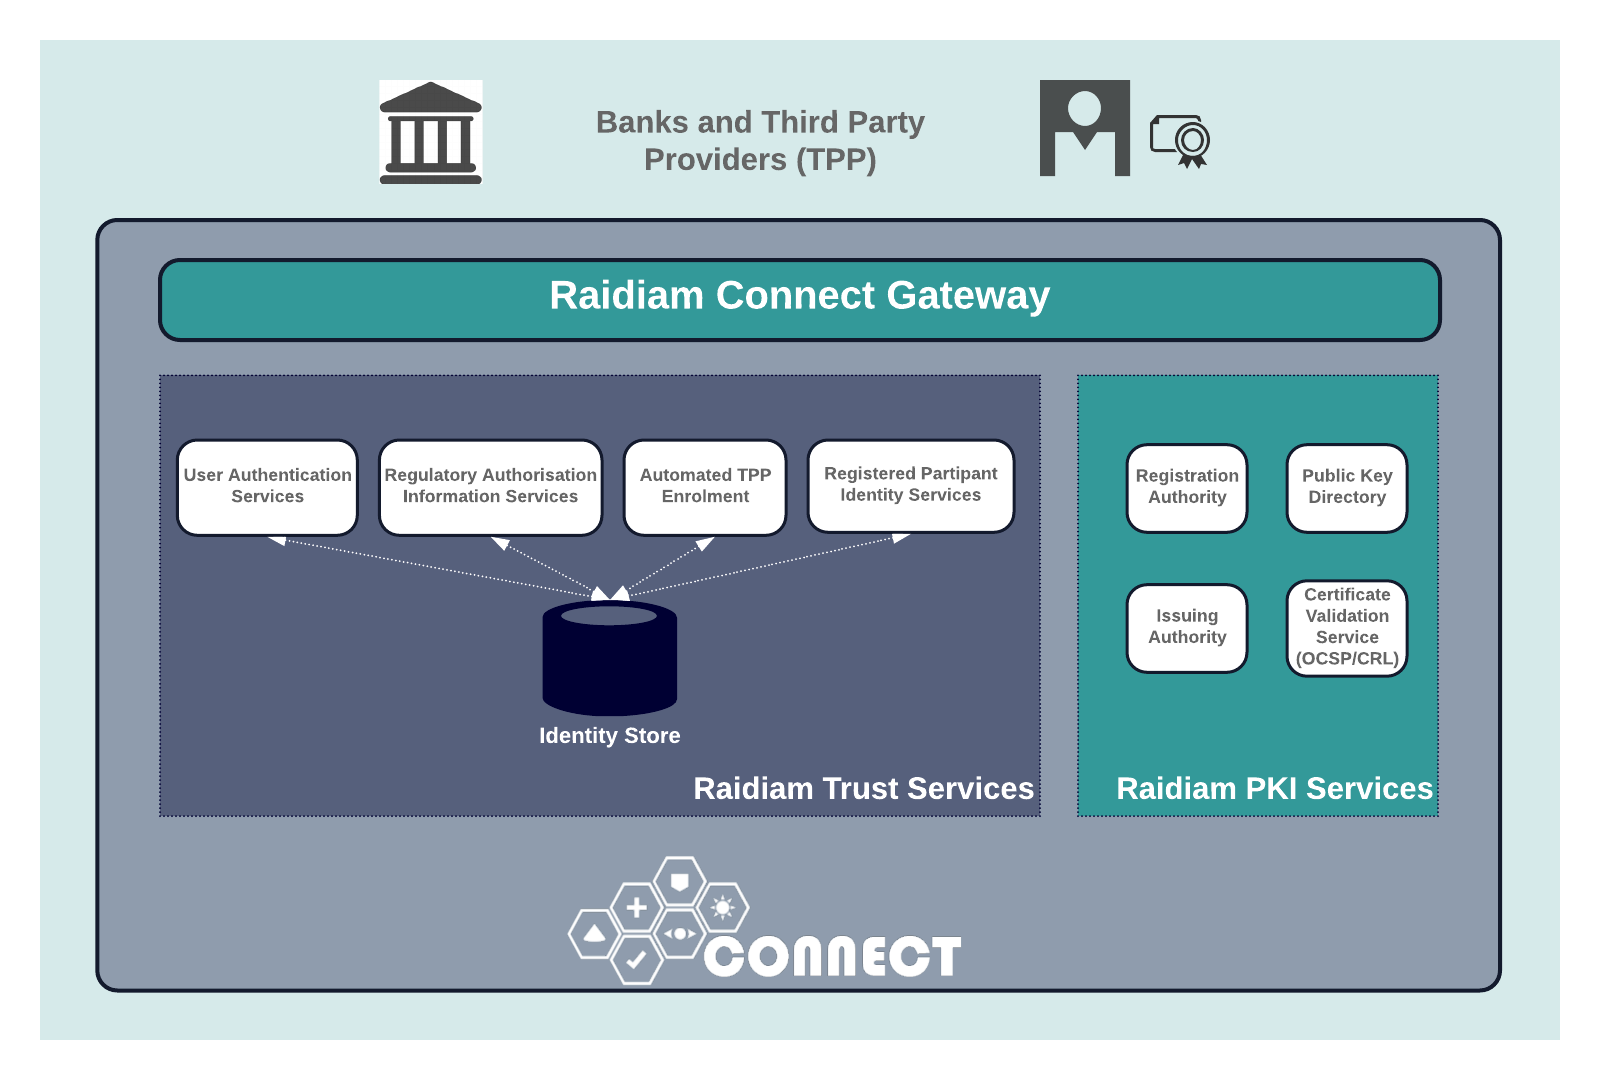 Raidiam Connect Gateway is part of a suite of technology enablers available to answer the needs of your connected economy journey